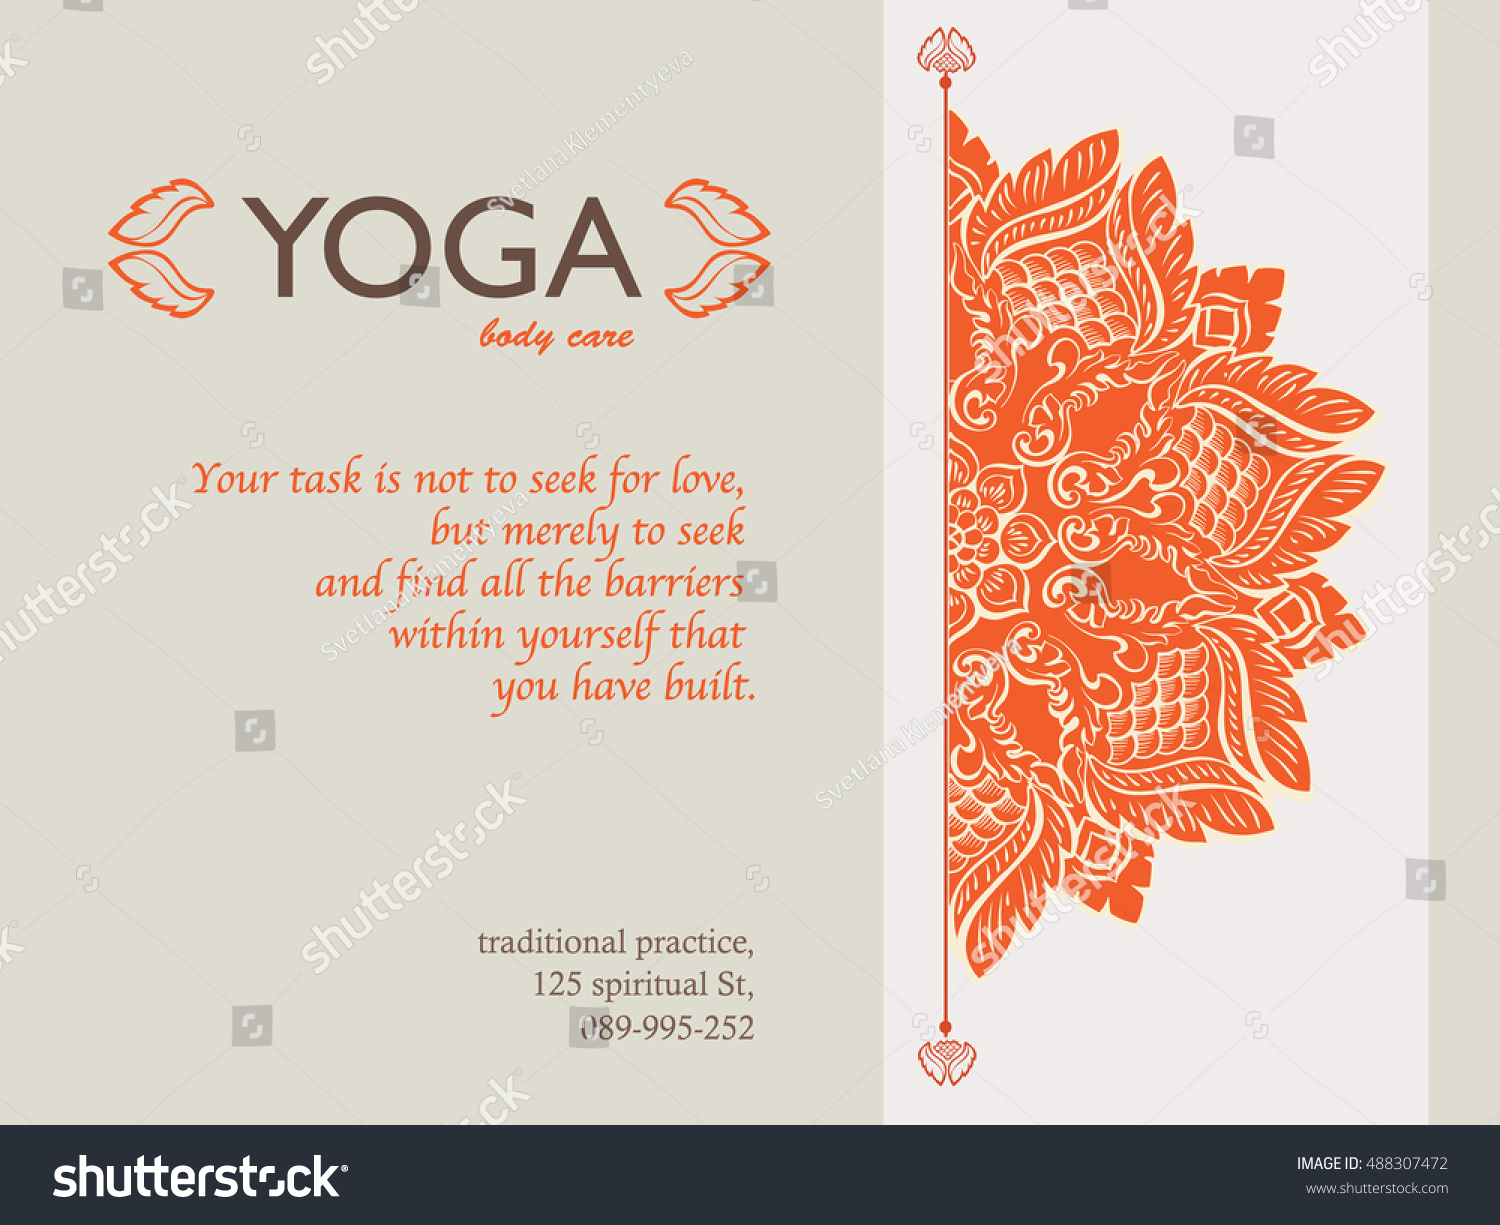 certificate-template-with-mandala-and-text-space-concept-for-yoga-studio-beauty-salon-free-download